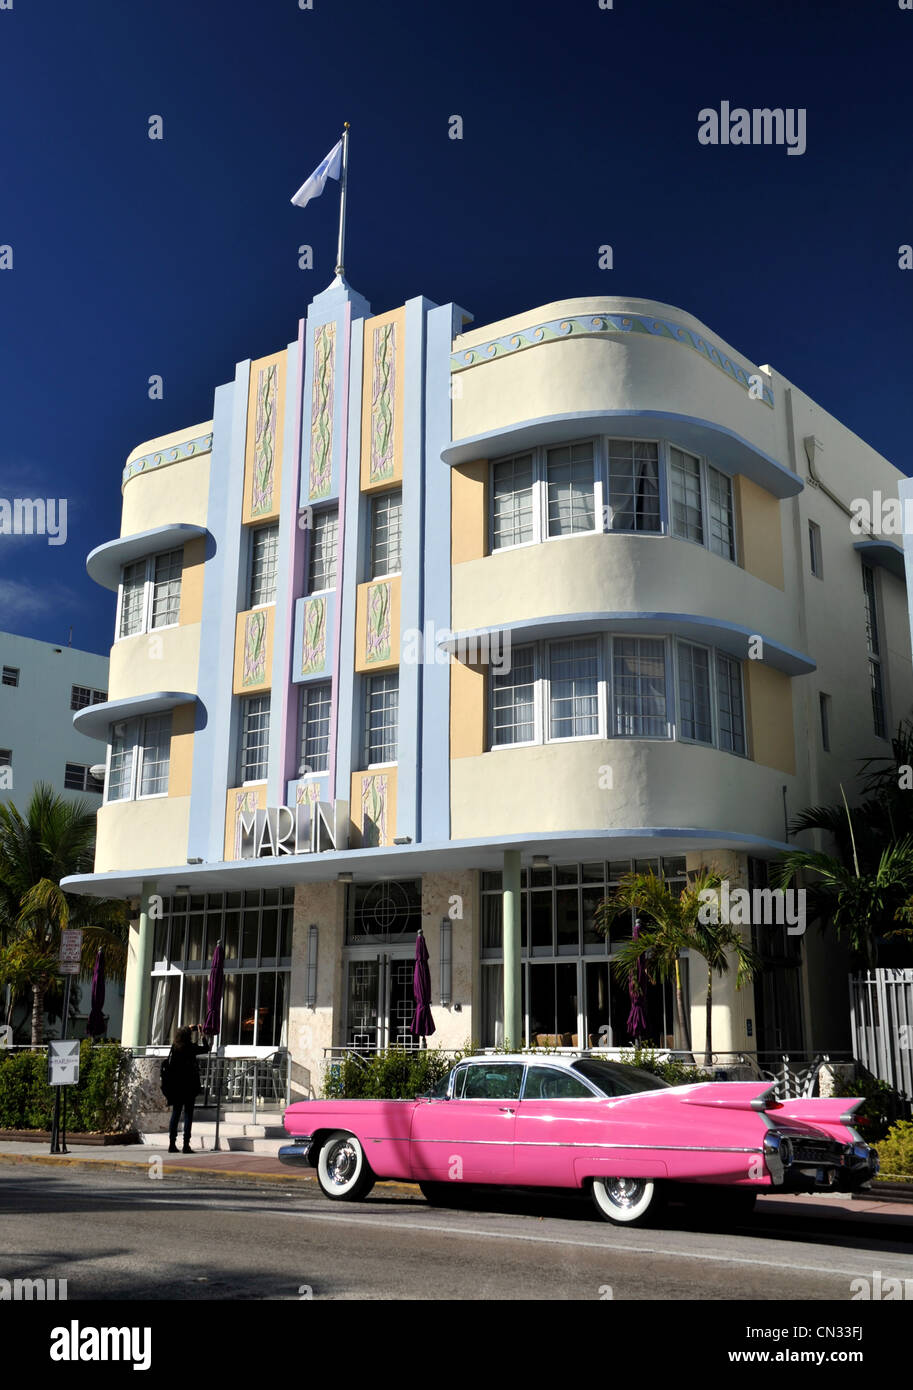 Marlin Hotel, Miami, Floride, USA Photo Stock